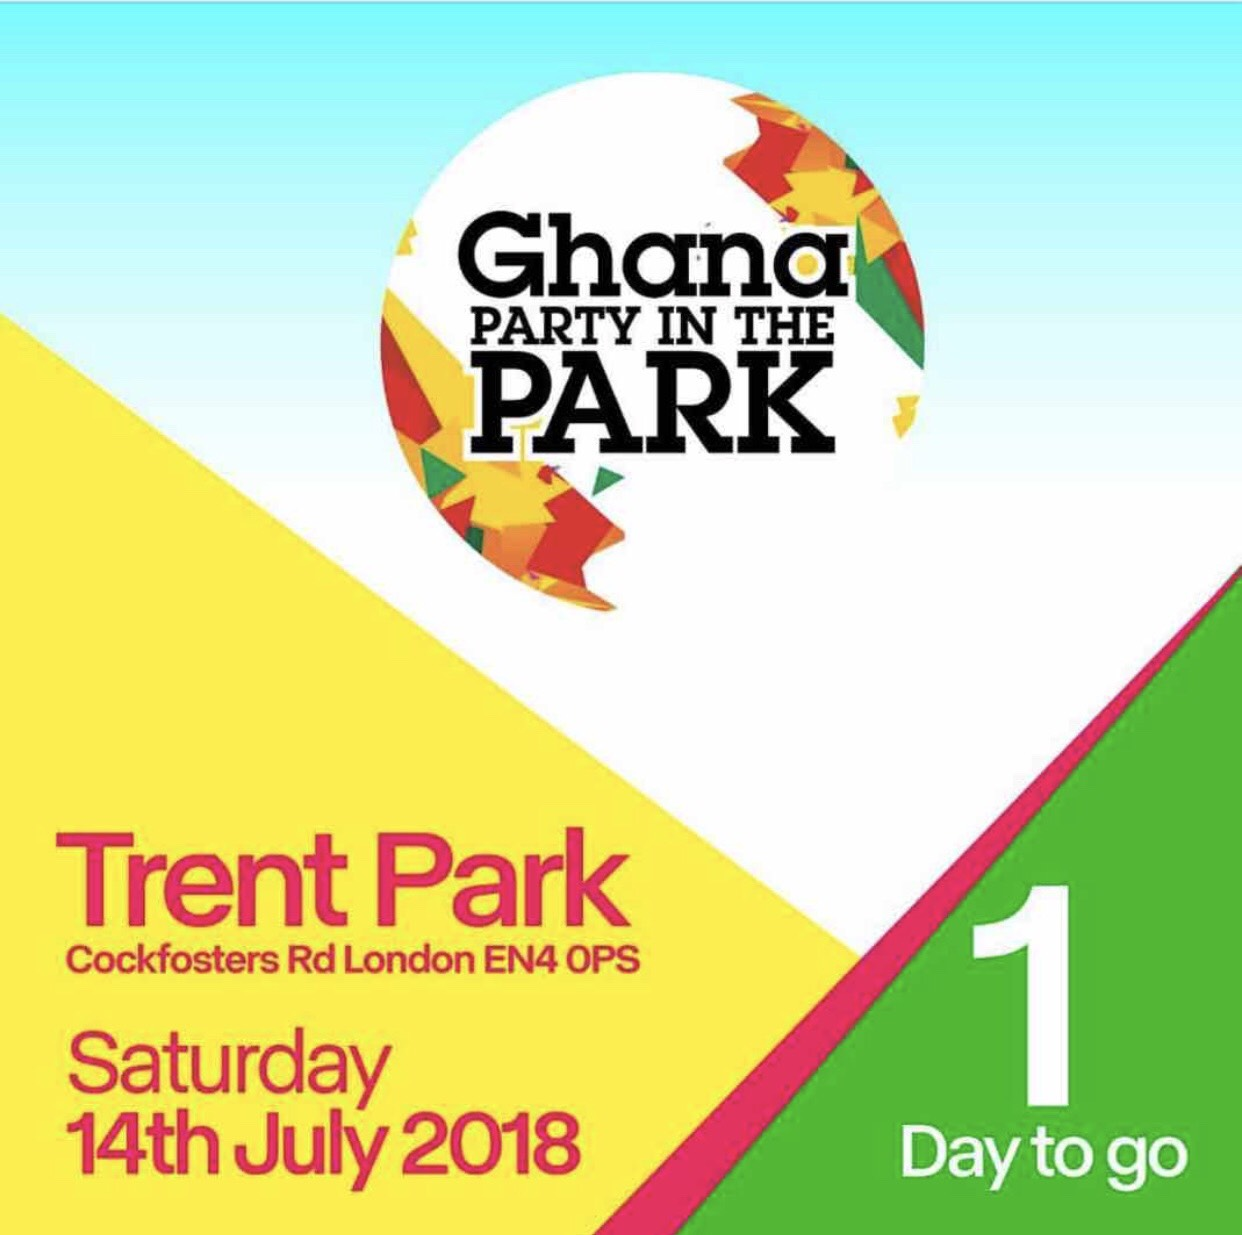 DJ Mensah's Akwaaba Group to thrill Ghanaians at 'Party in the park festival 2018'